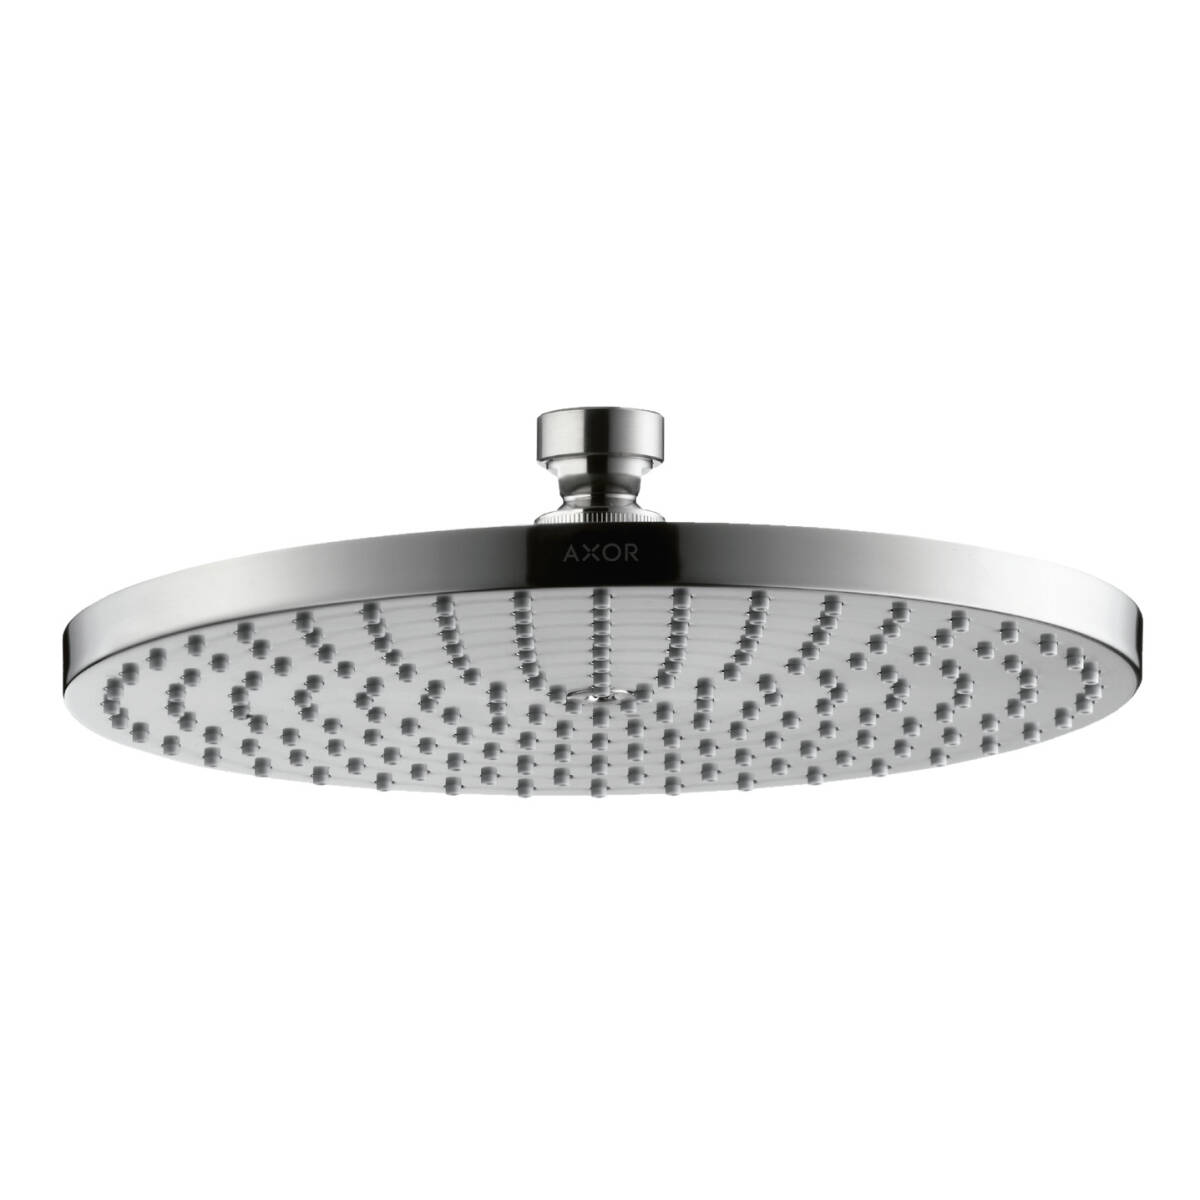 Plate overhead shower 240 1jet, Polished Gold Optic, 28494990